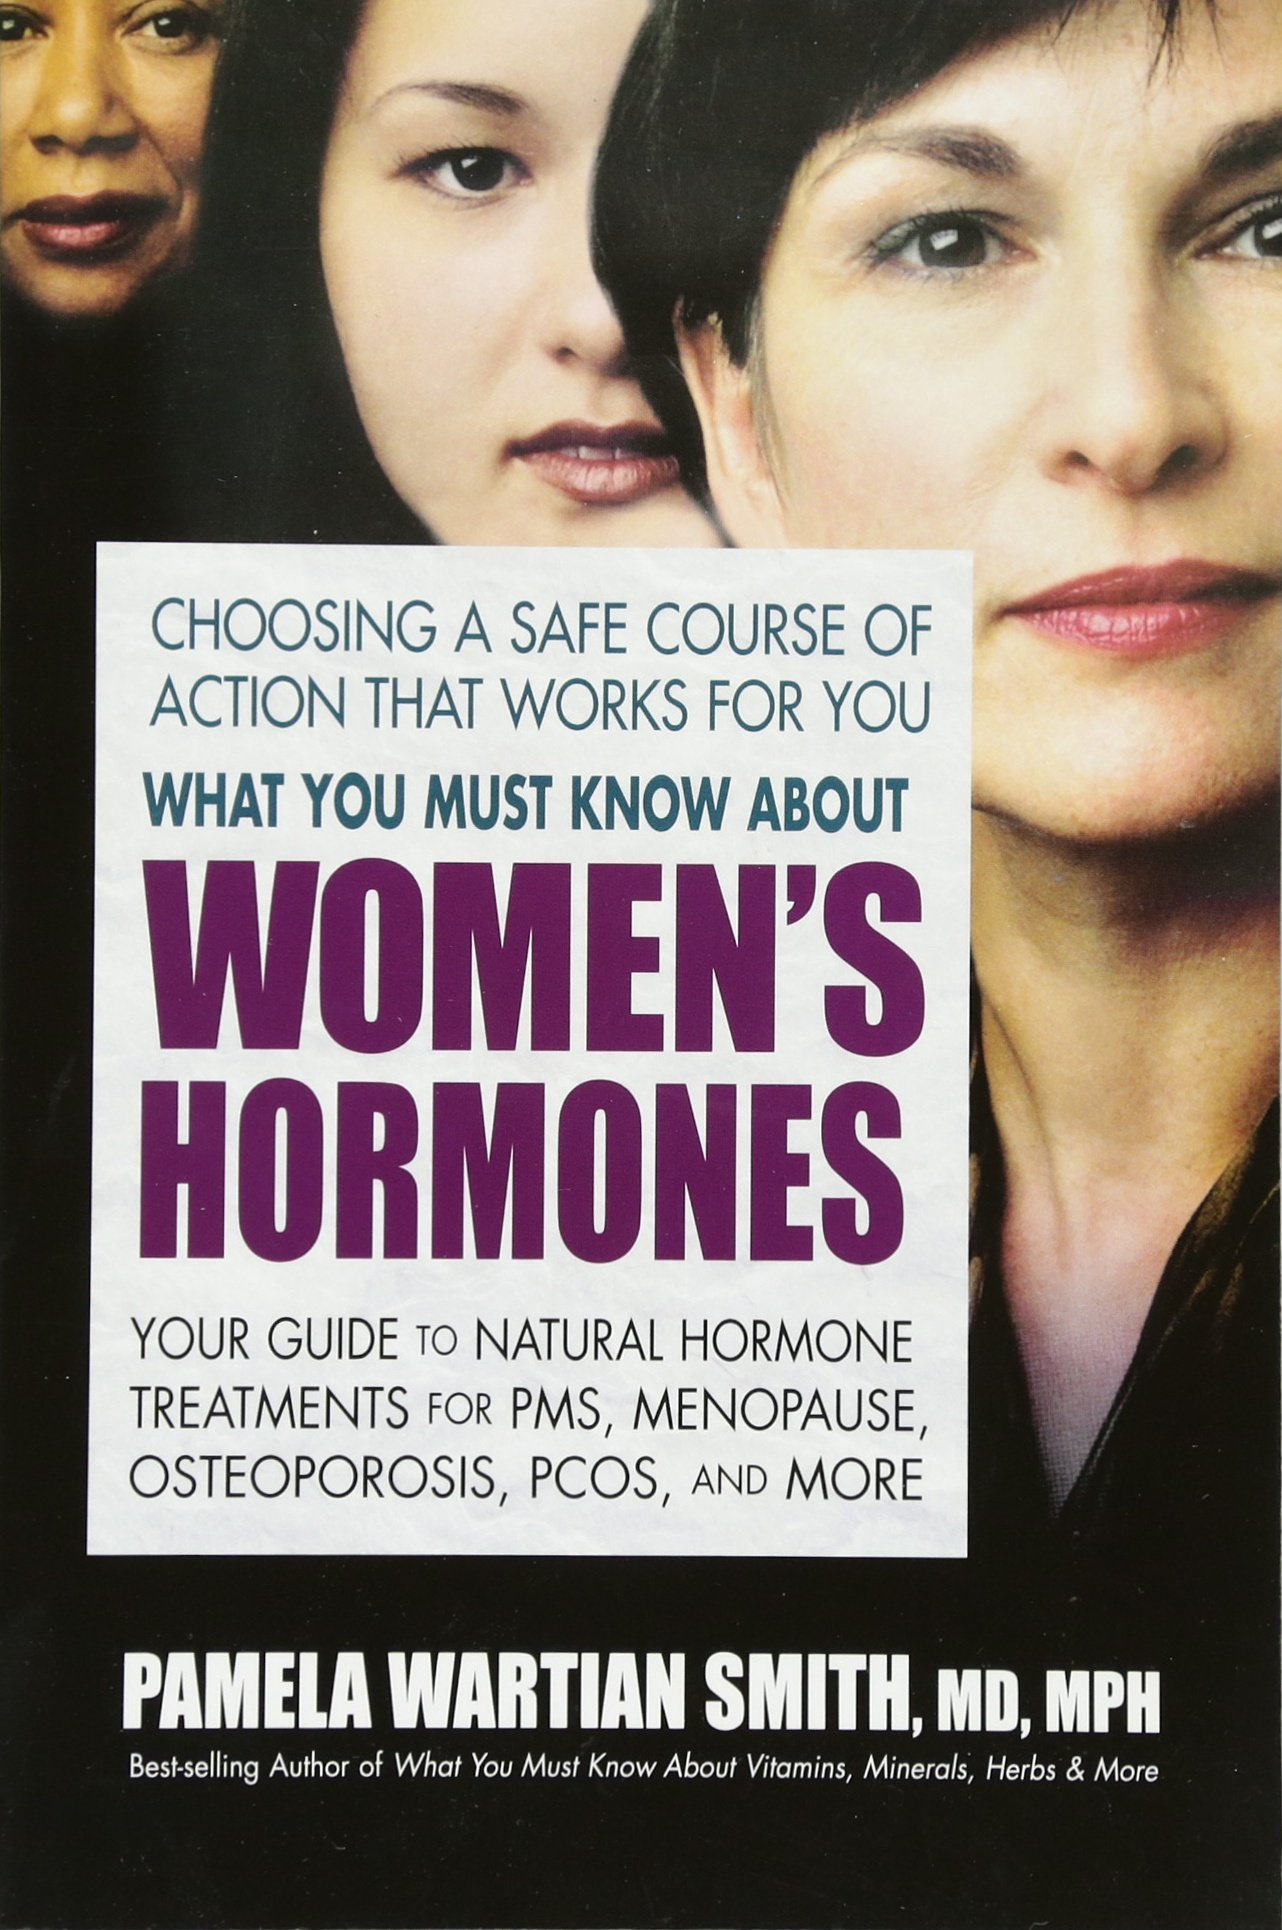 What You Must Know About Women's Hormones: Your